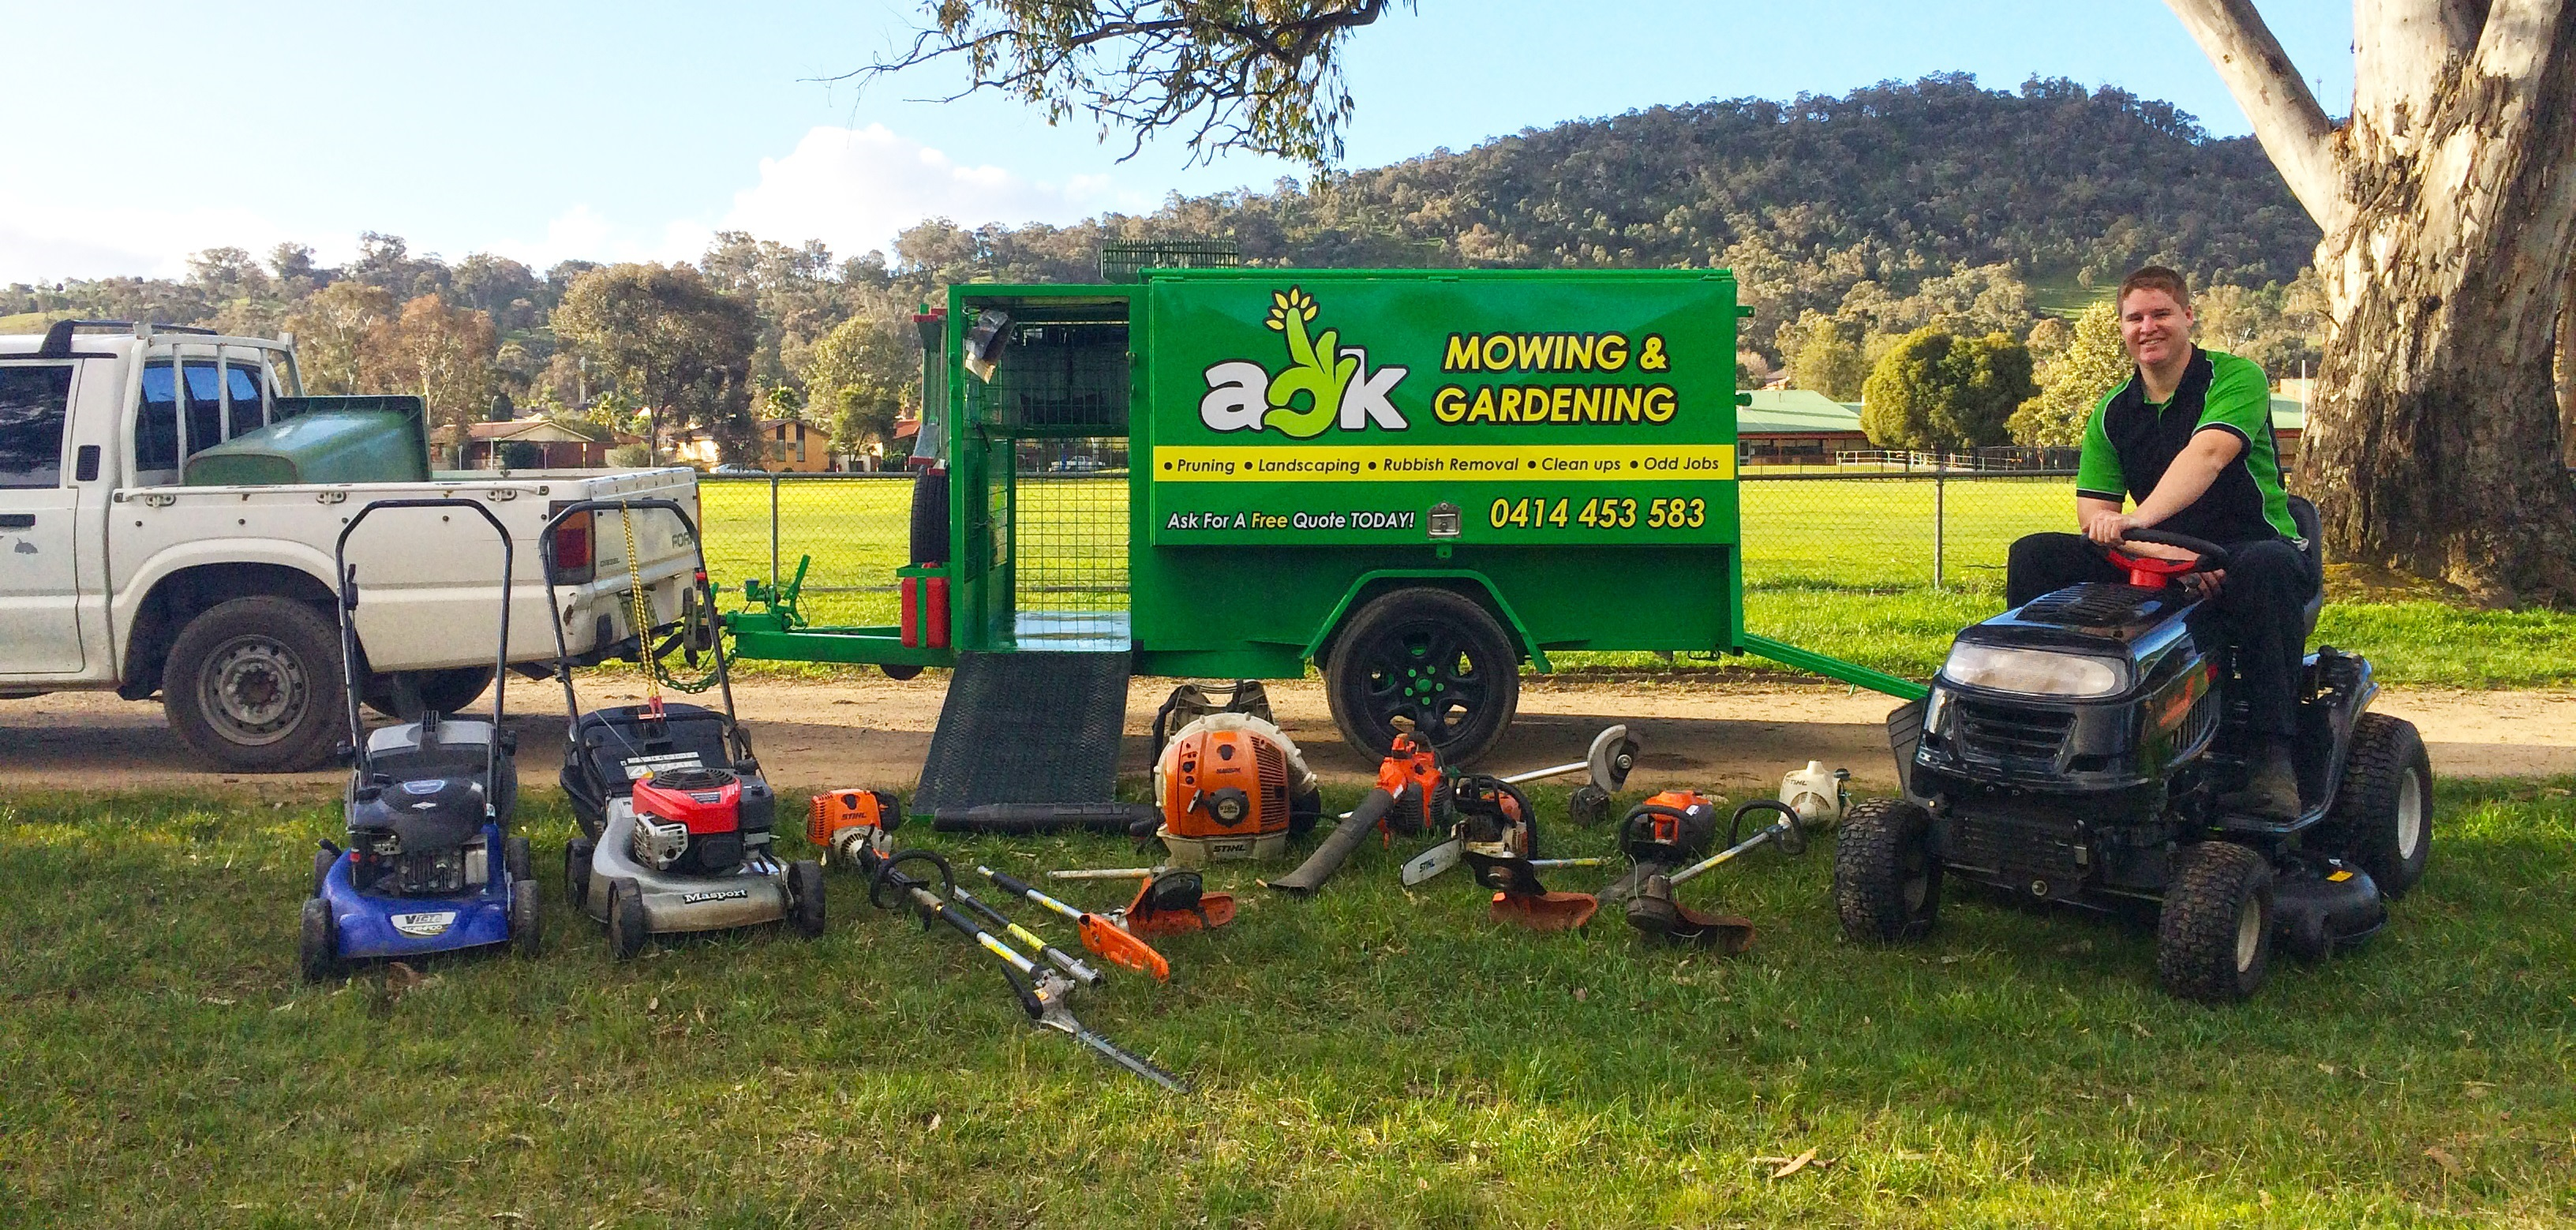 Aok mowing and gardening ipswich lawn mowing services for Lawn mowing and gardening services